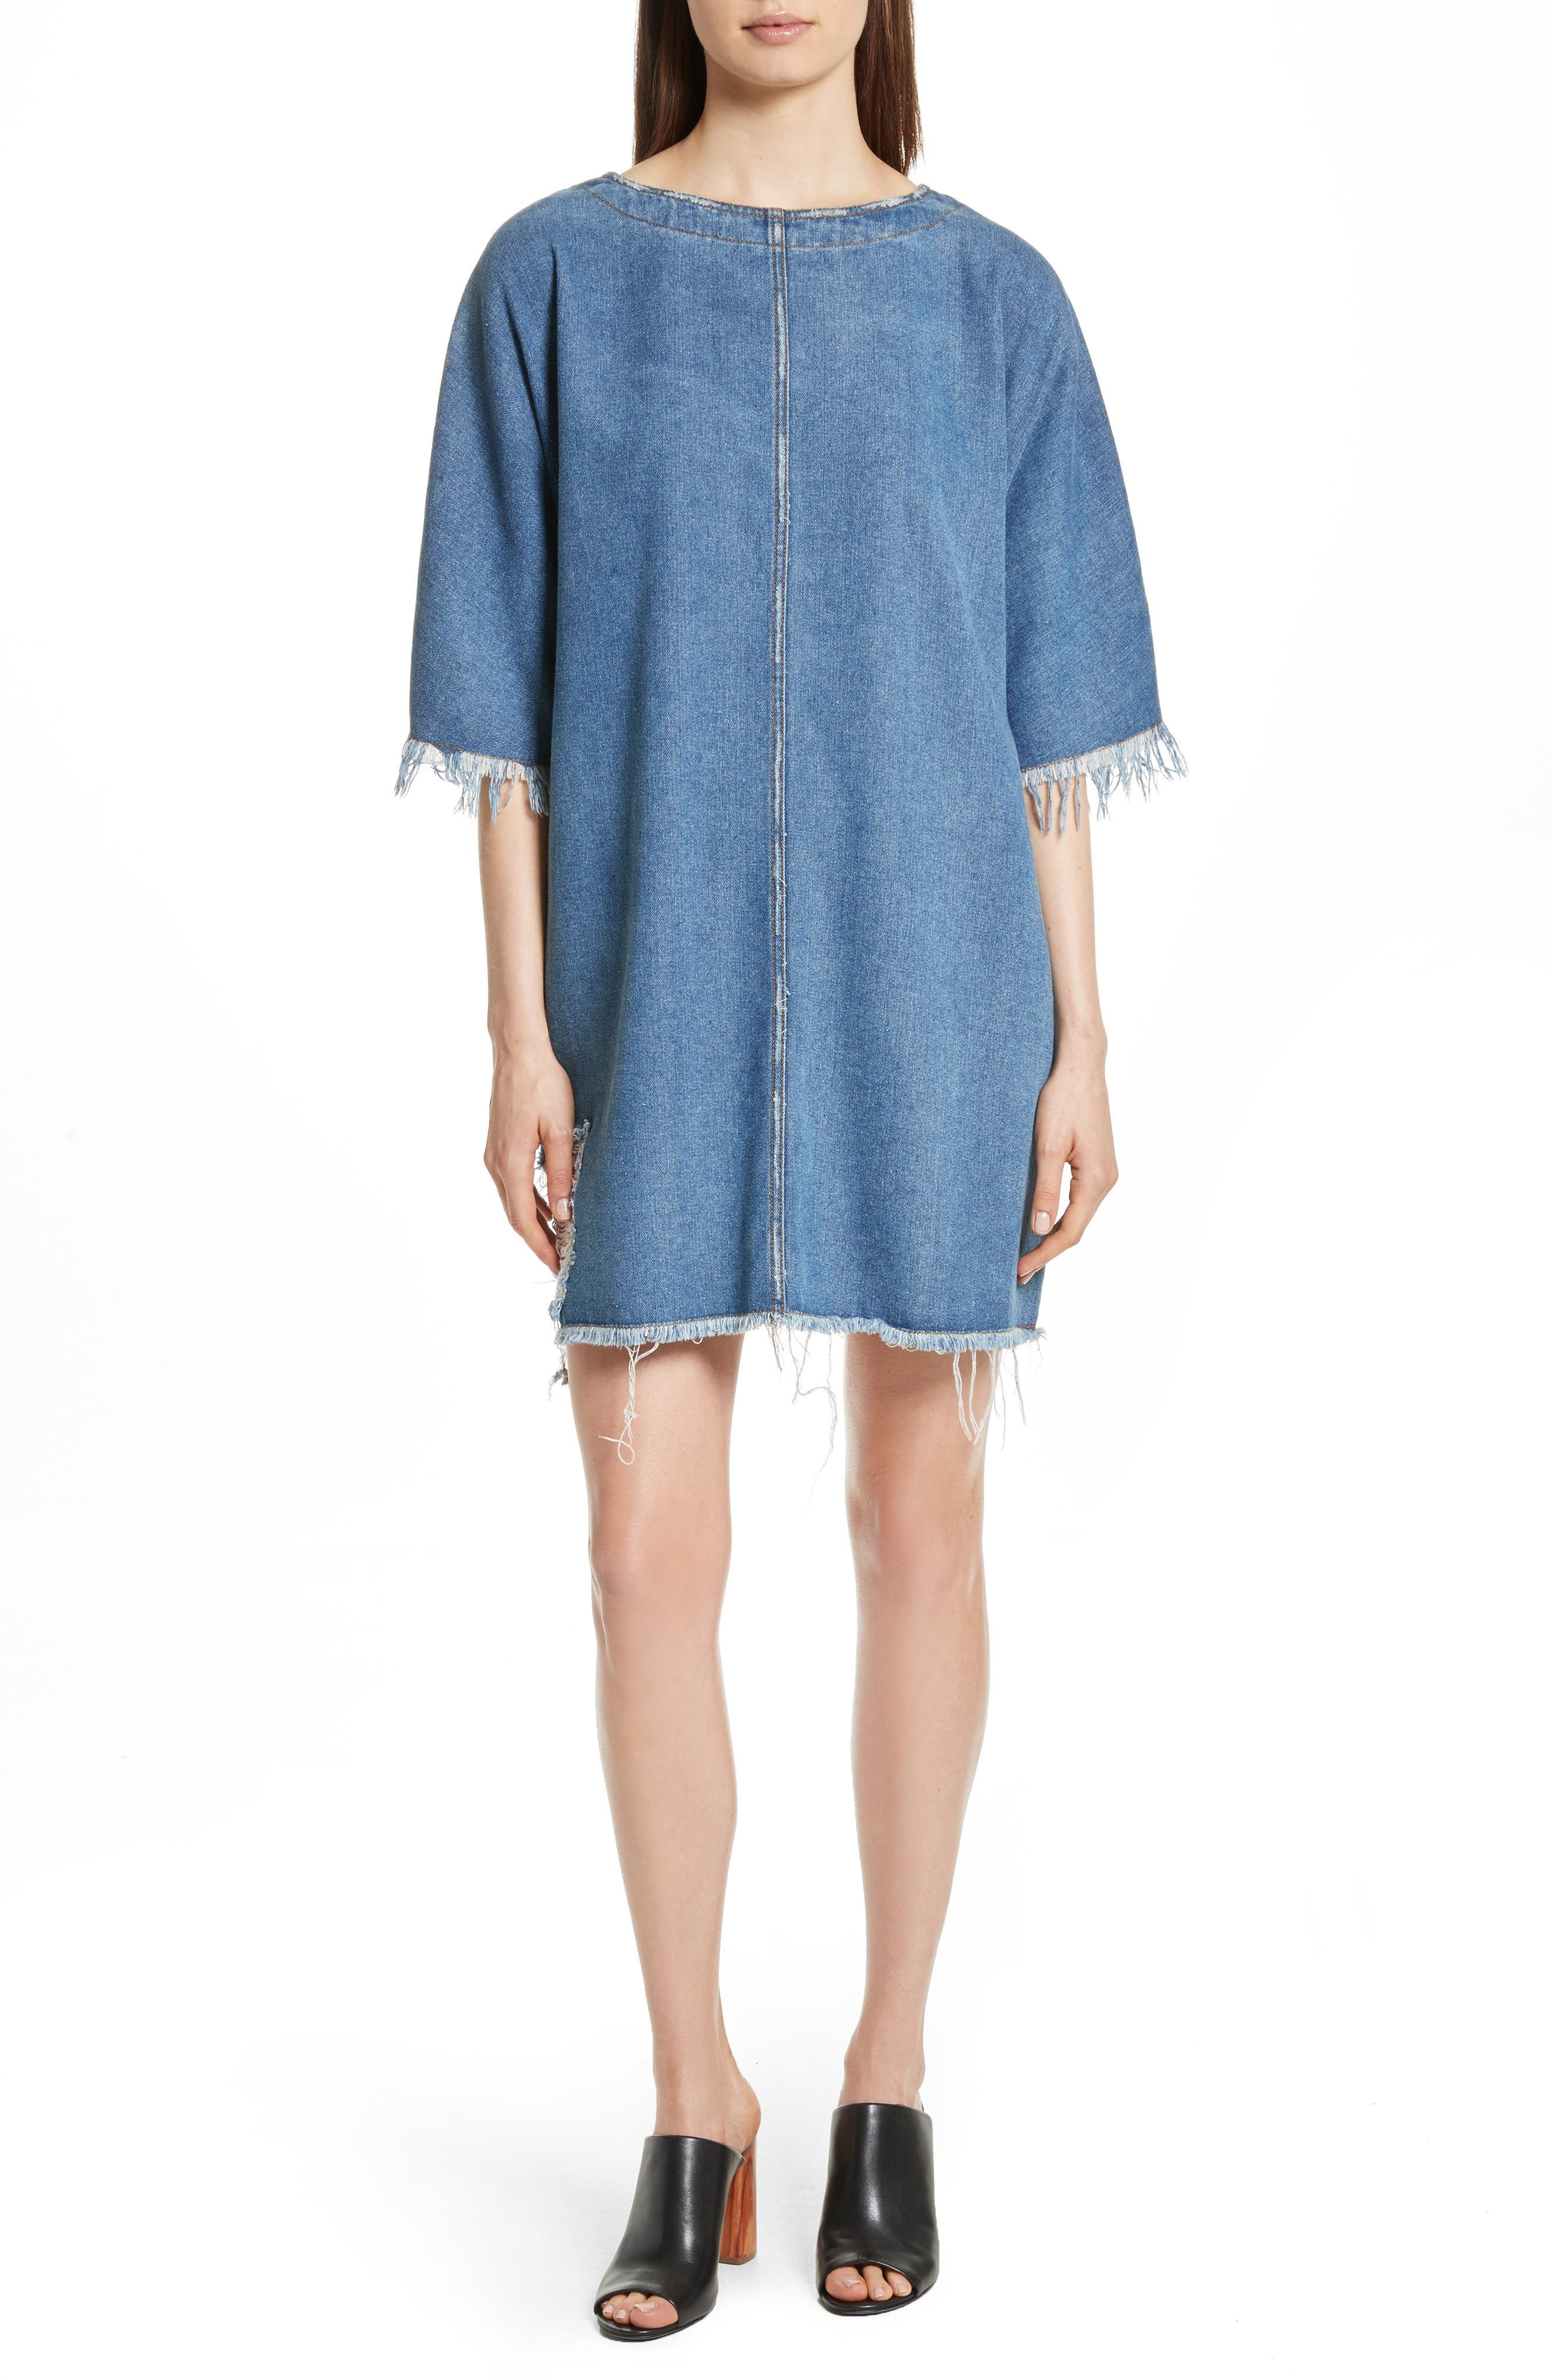 Alternate Image 1 Selected - Robert Rodriguez Distressed Denim Dress